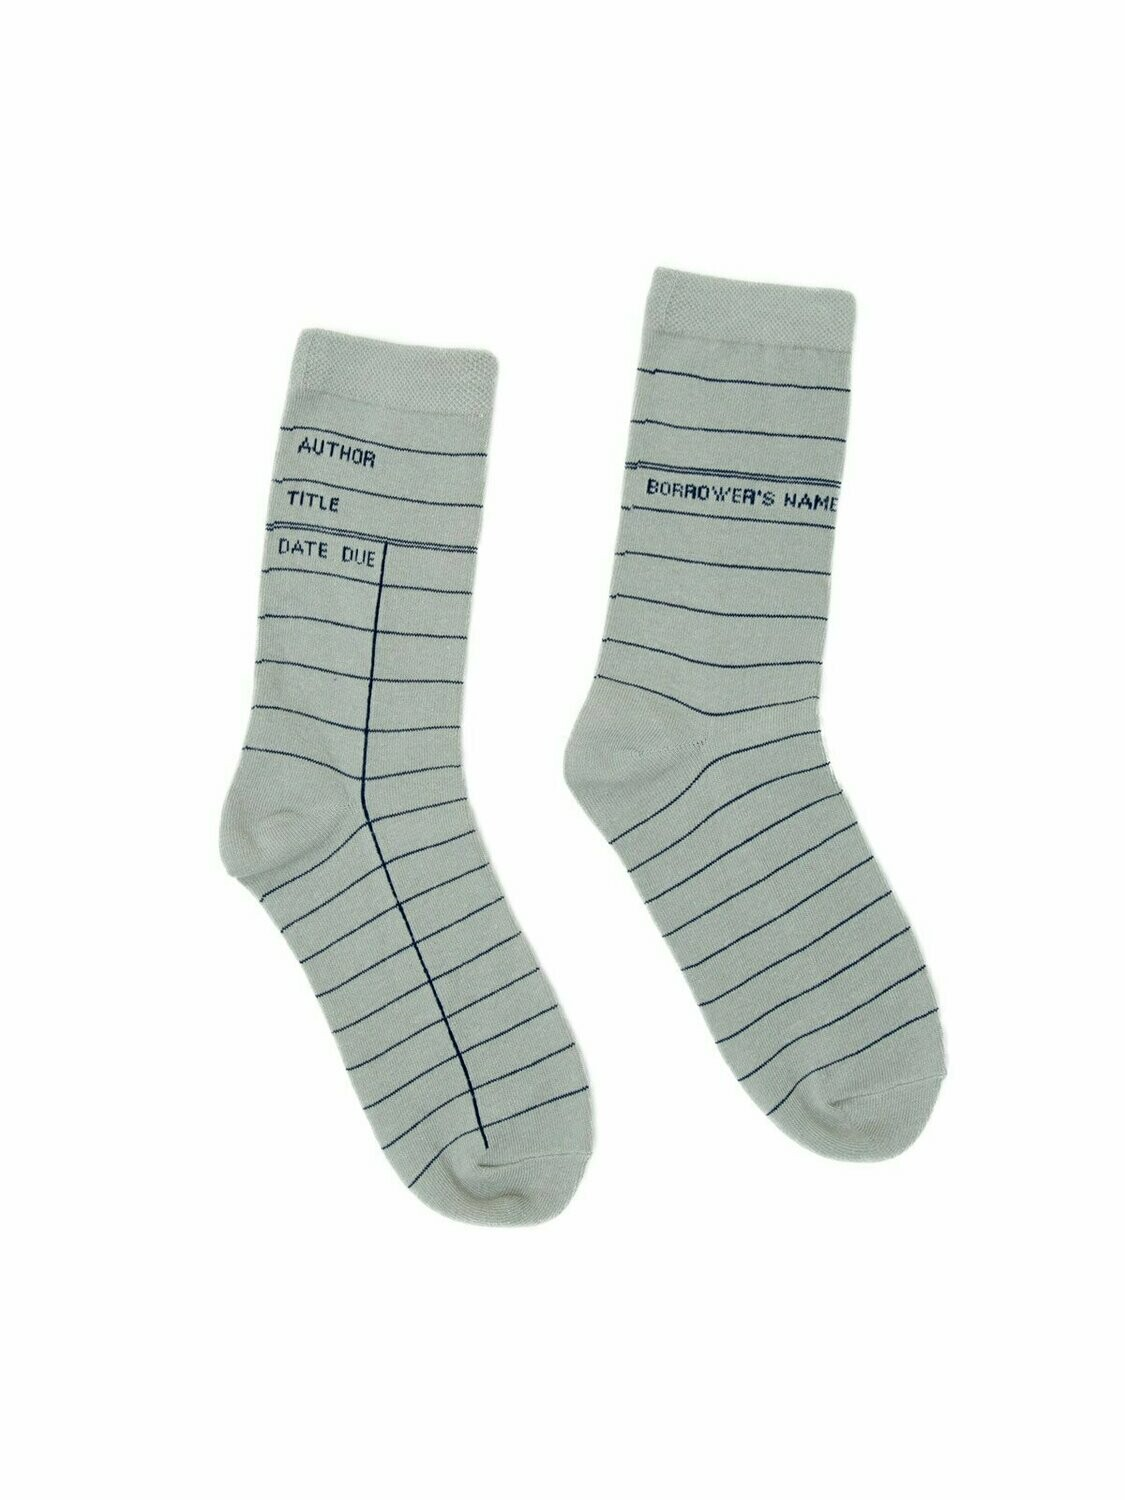 Library Card: Light Gray socks